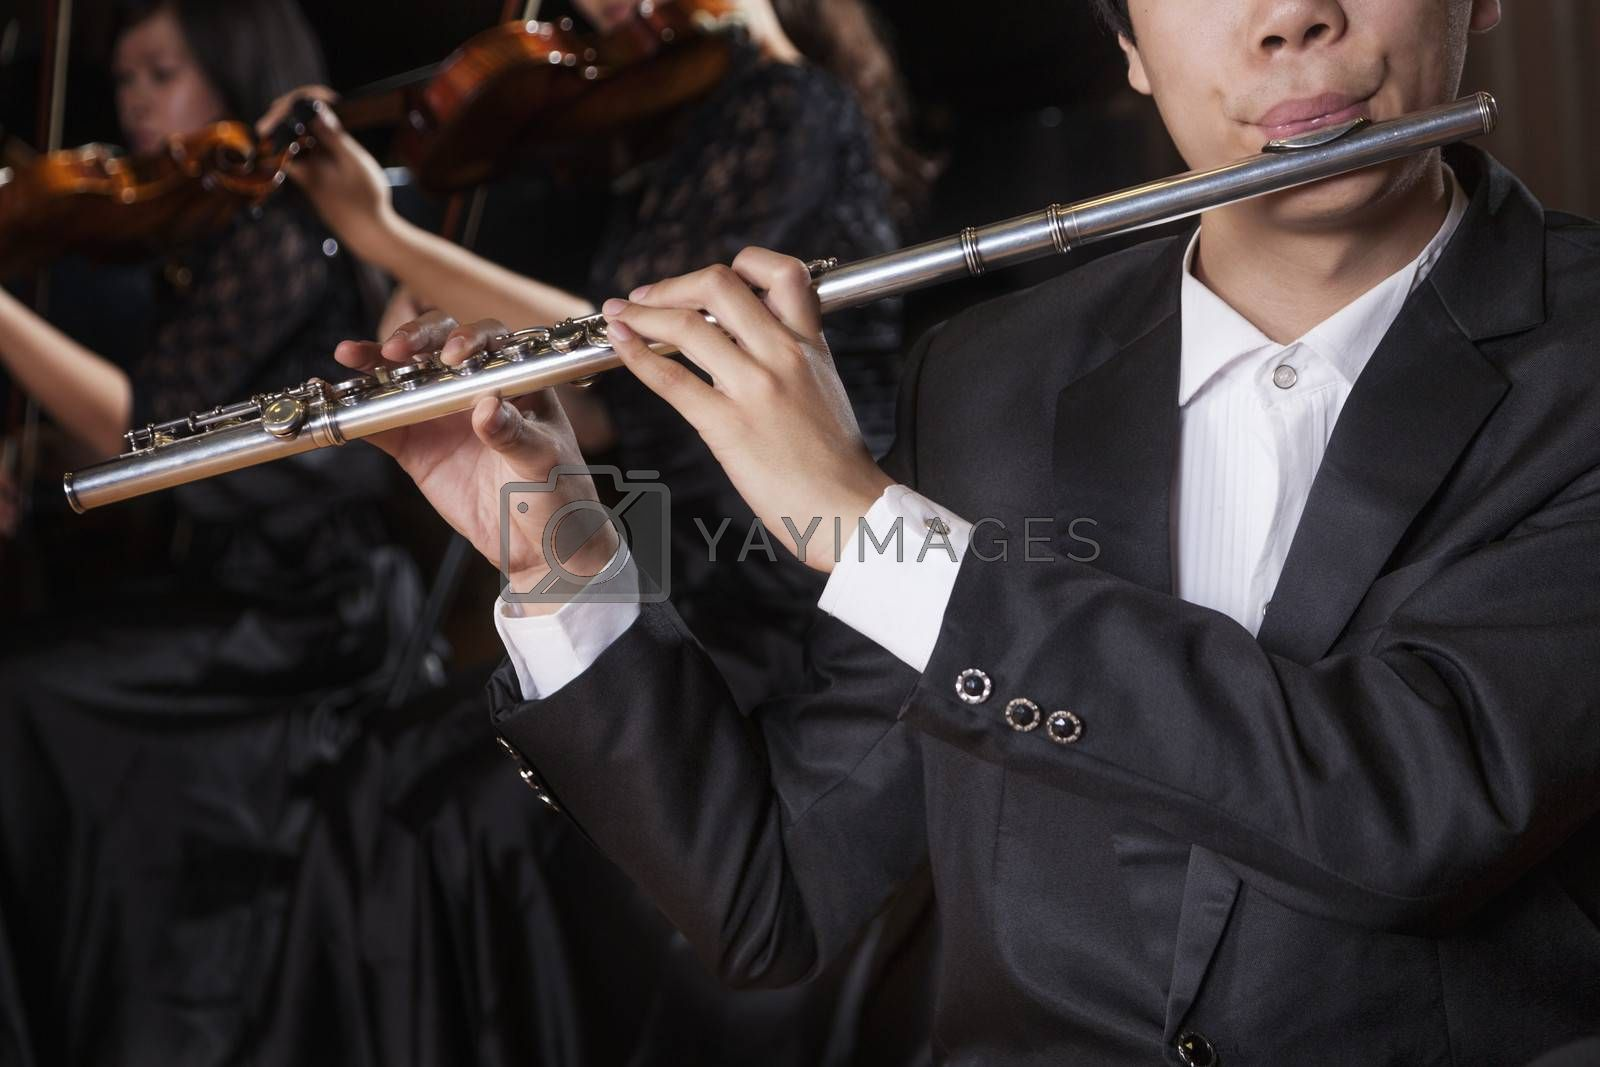 Flautist holding and playing the flute during a performance, close-up